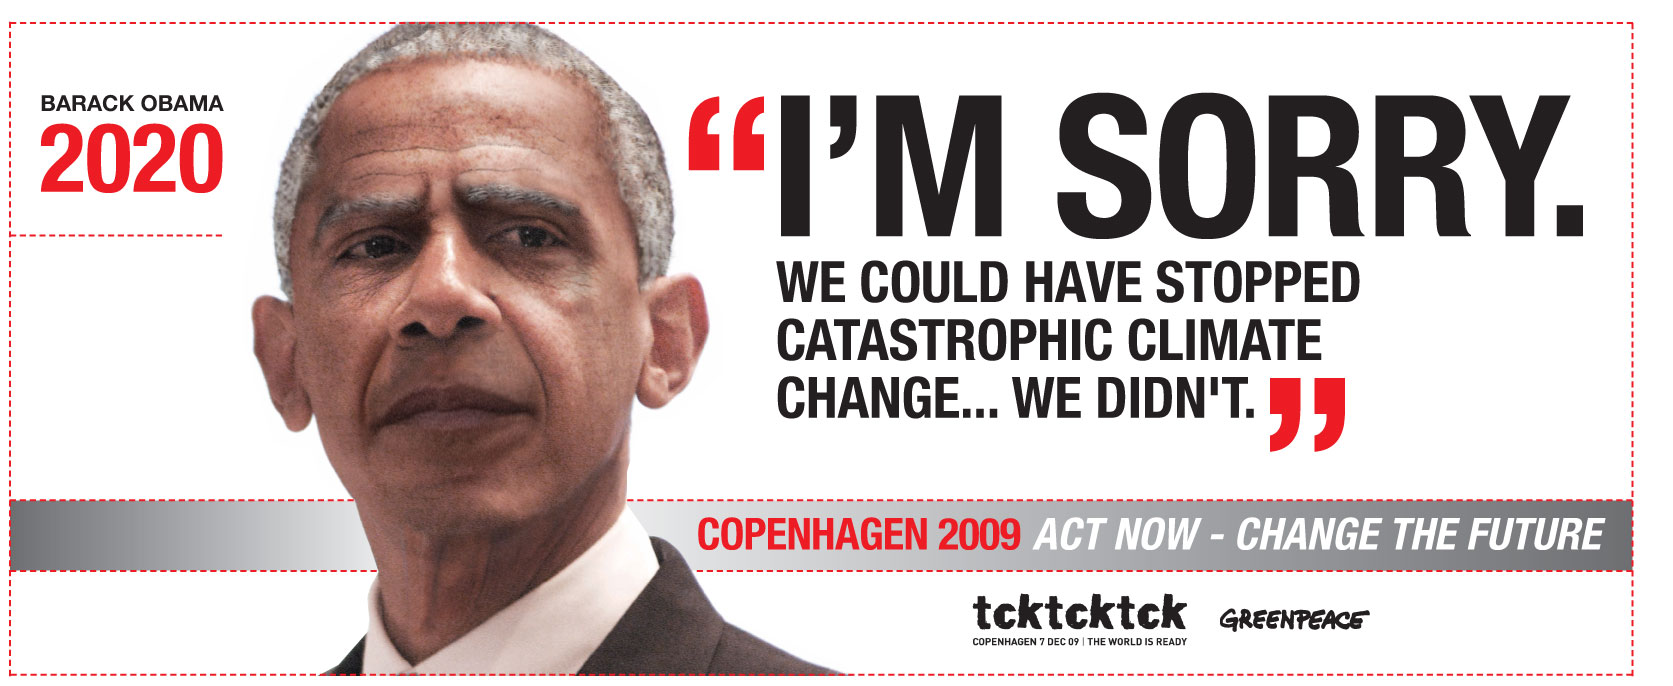 greenpeace-sorry-obama_1363263350.jpg_1673x686